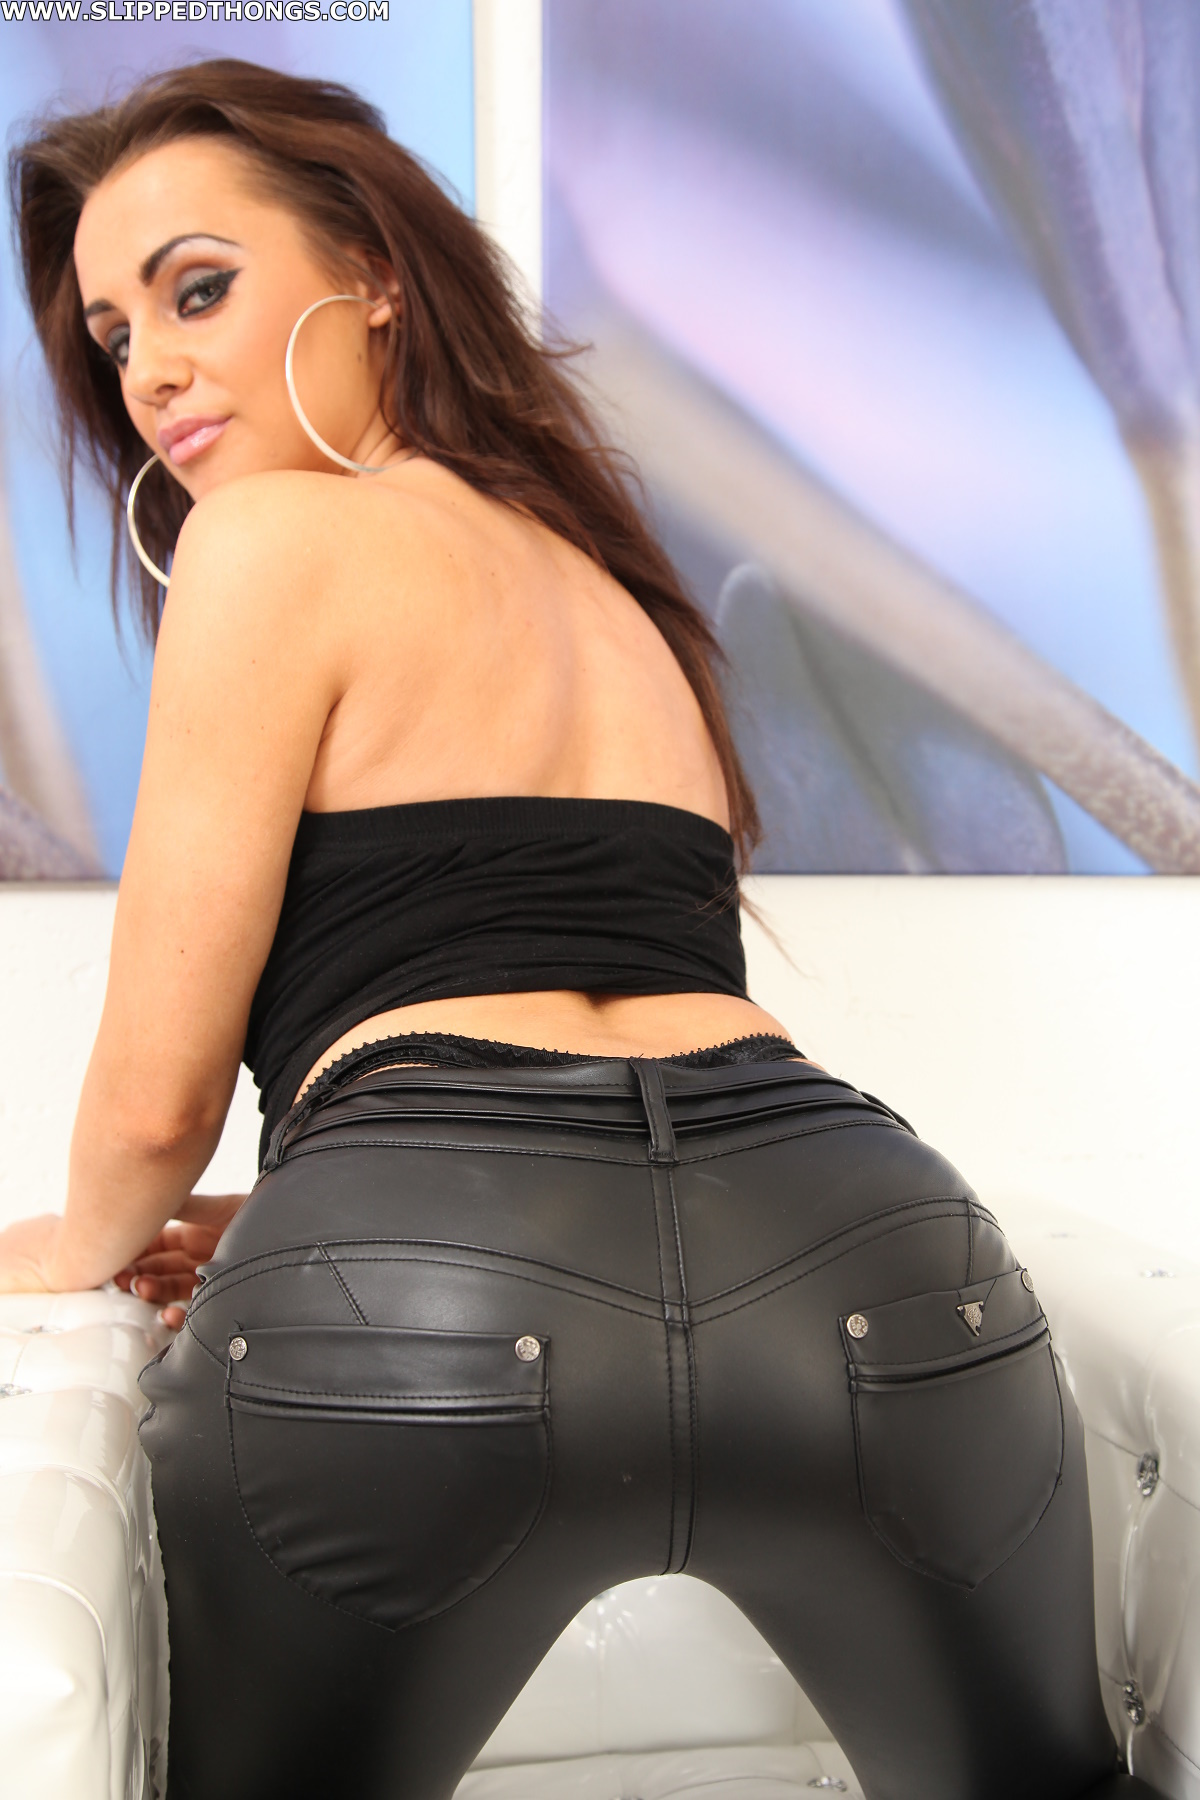 thong leather pants